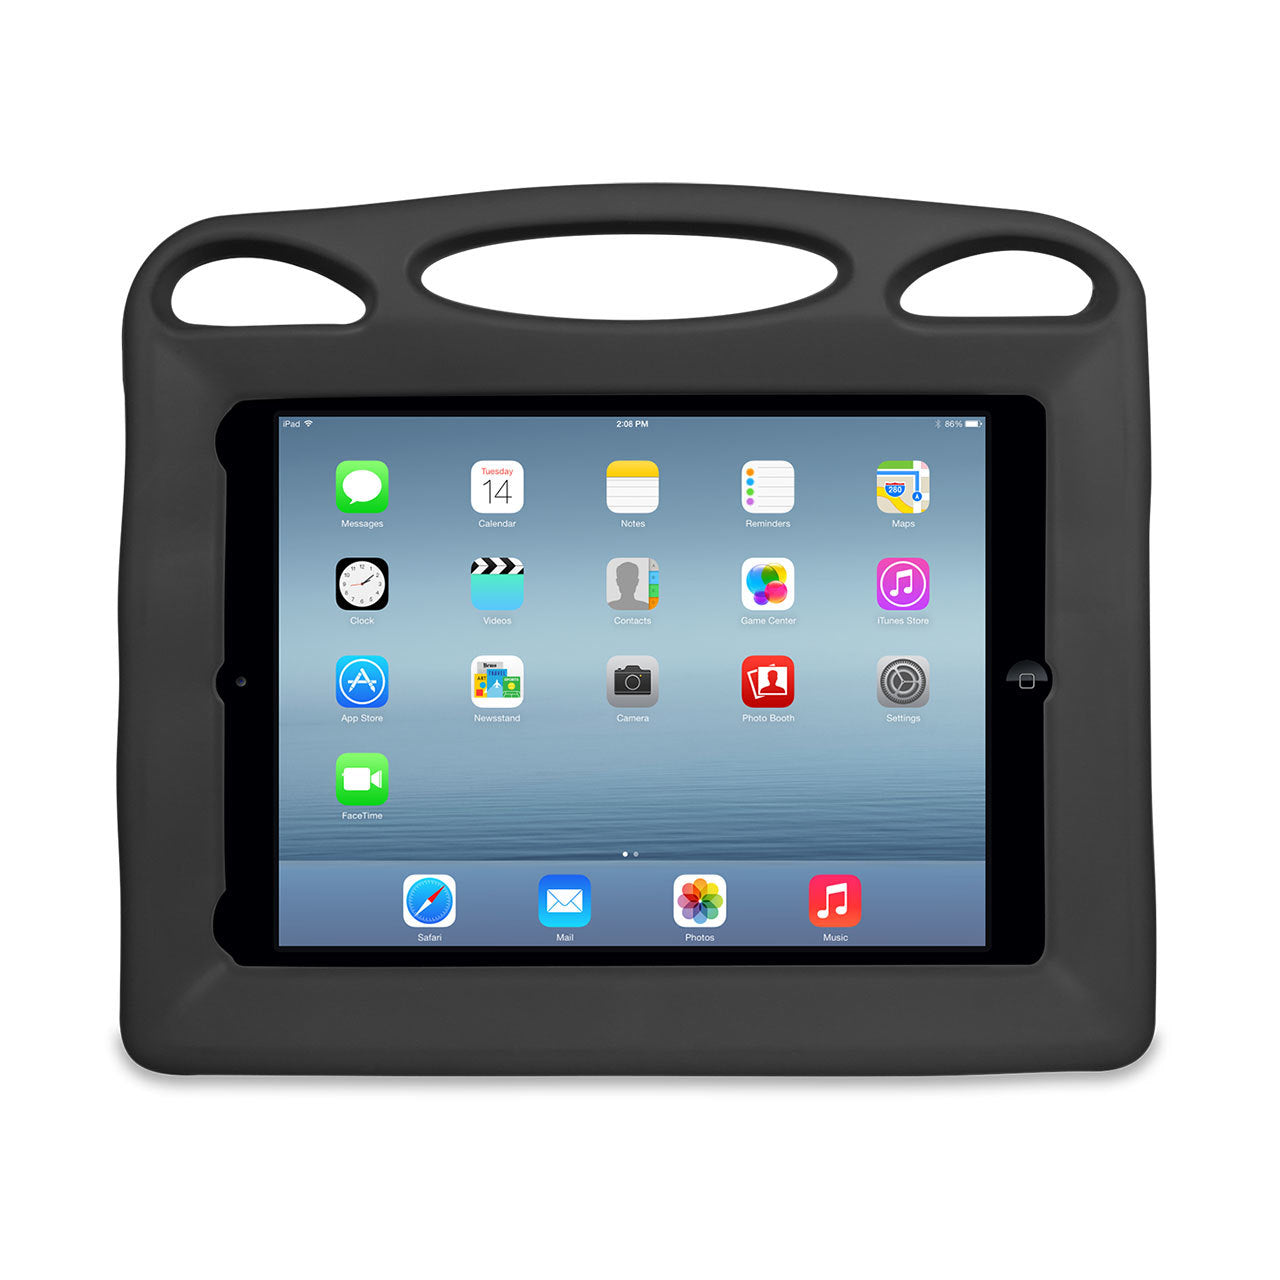 Big Grips Lift Case Black Bulk for iPad Pro 12.9 2017/ Pro 12.9 2015